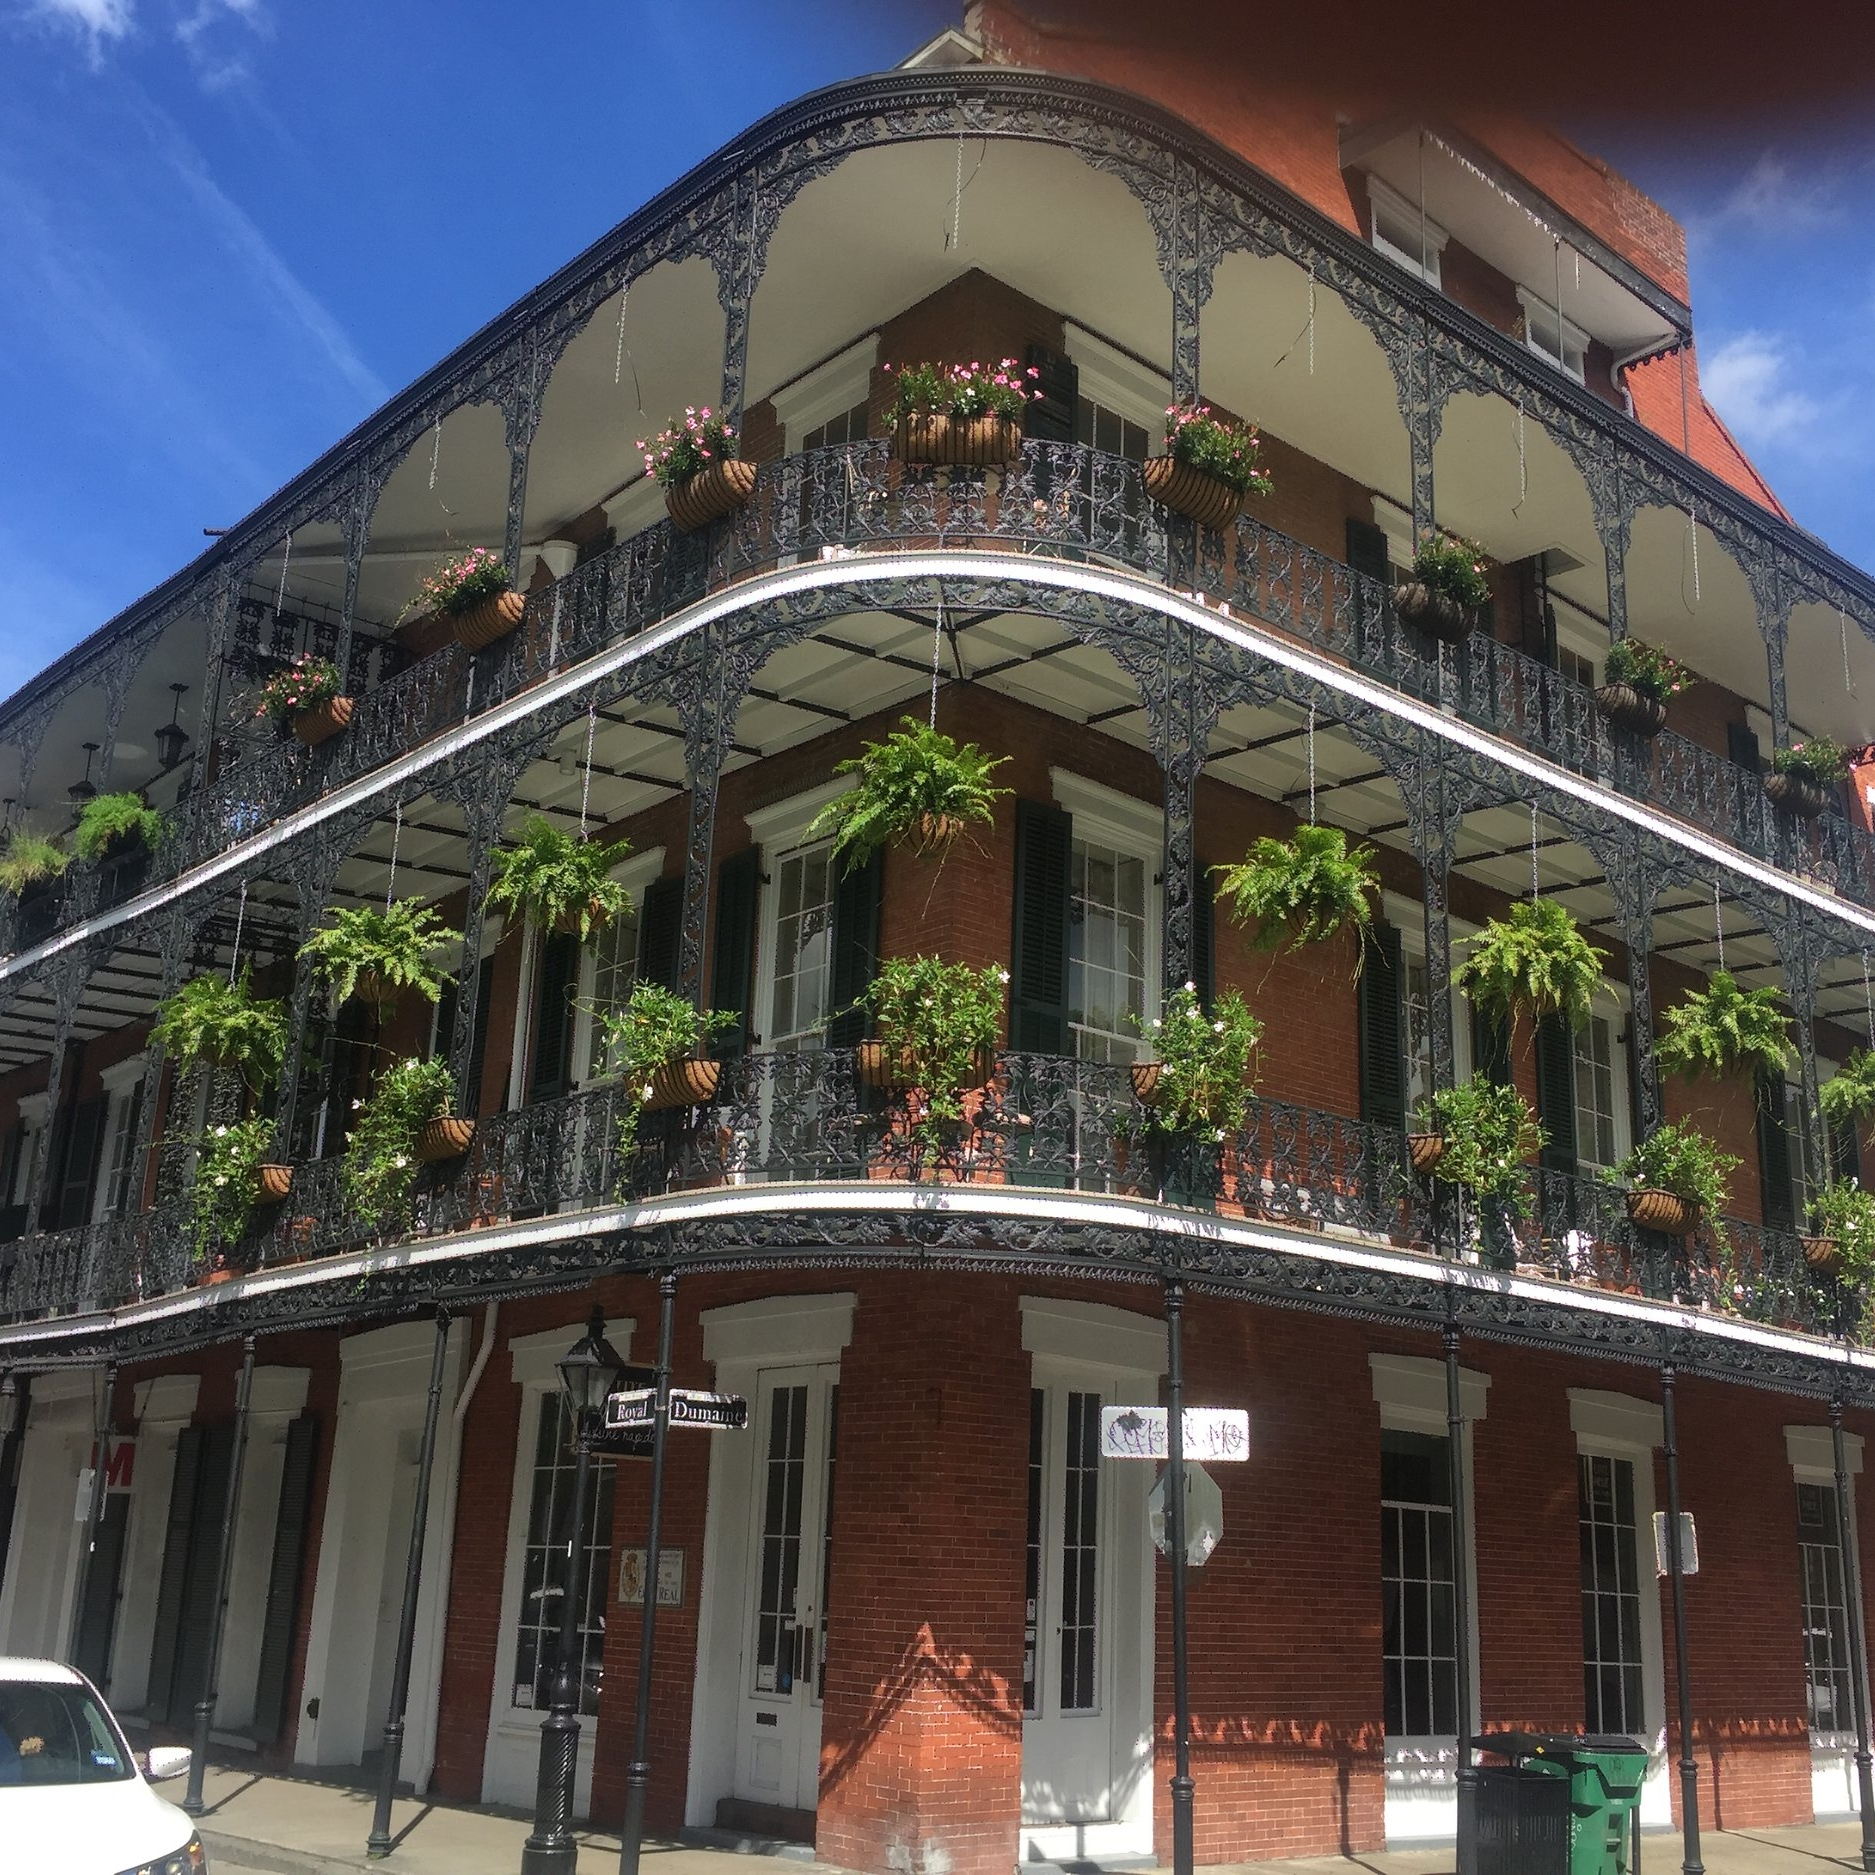 New Orleans by Eleanor Currier for The Doubtful Traveller